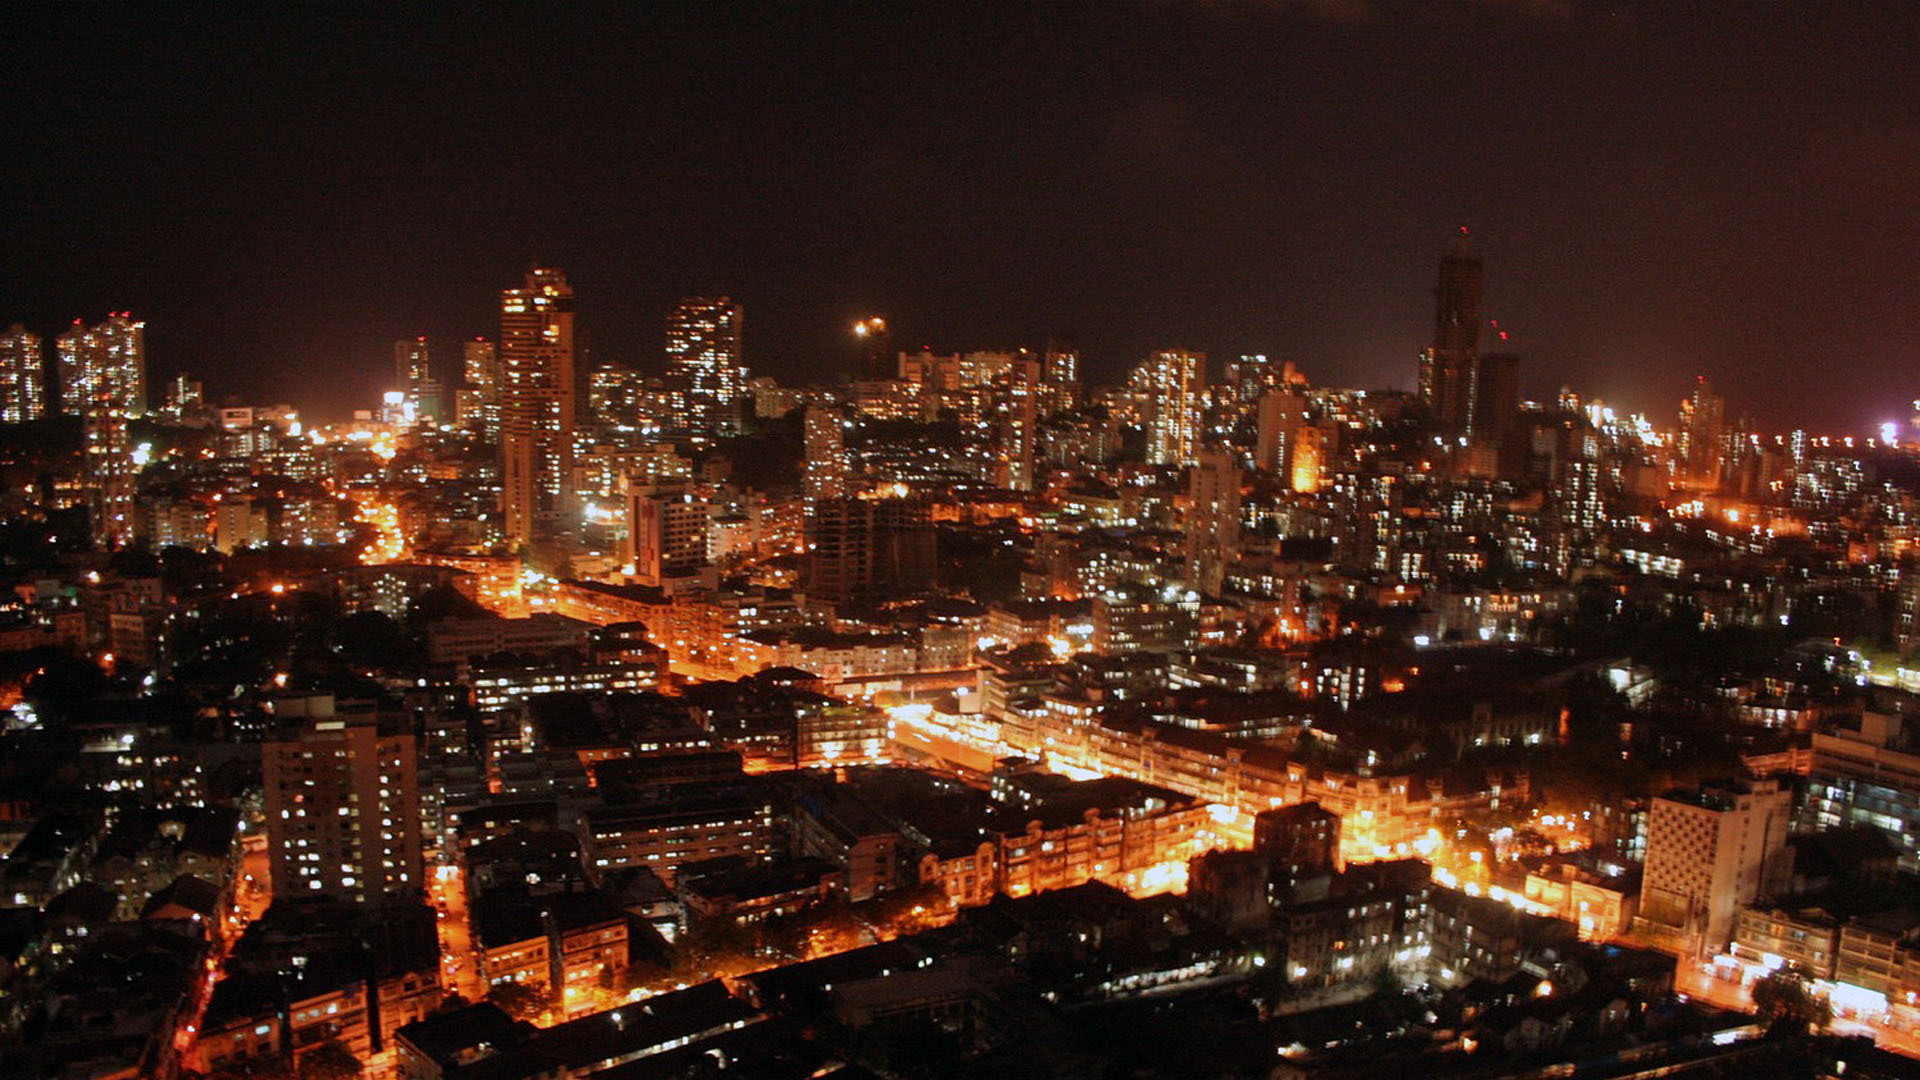 night Mumbai wallpapers and images wallpapers pictures photos 1920x1080